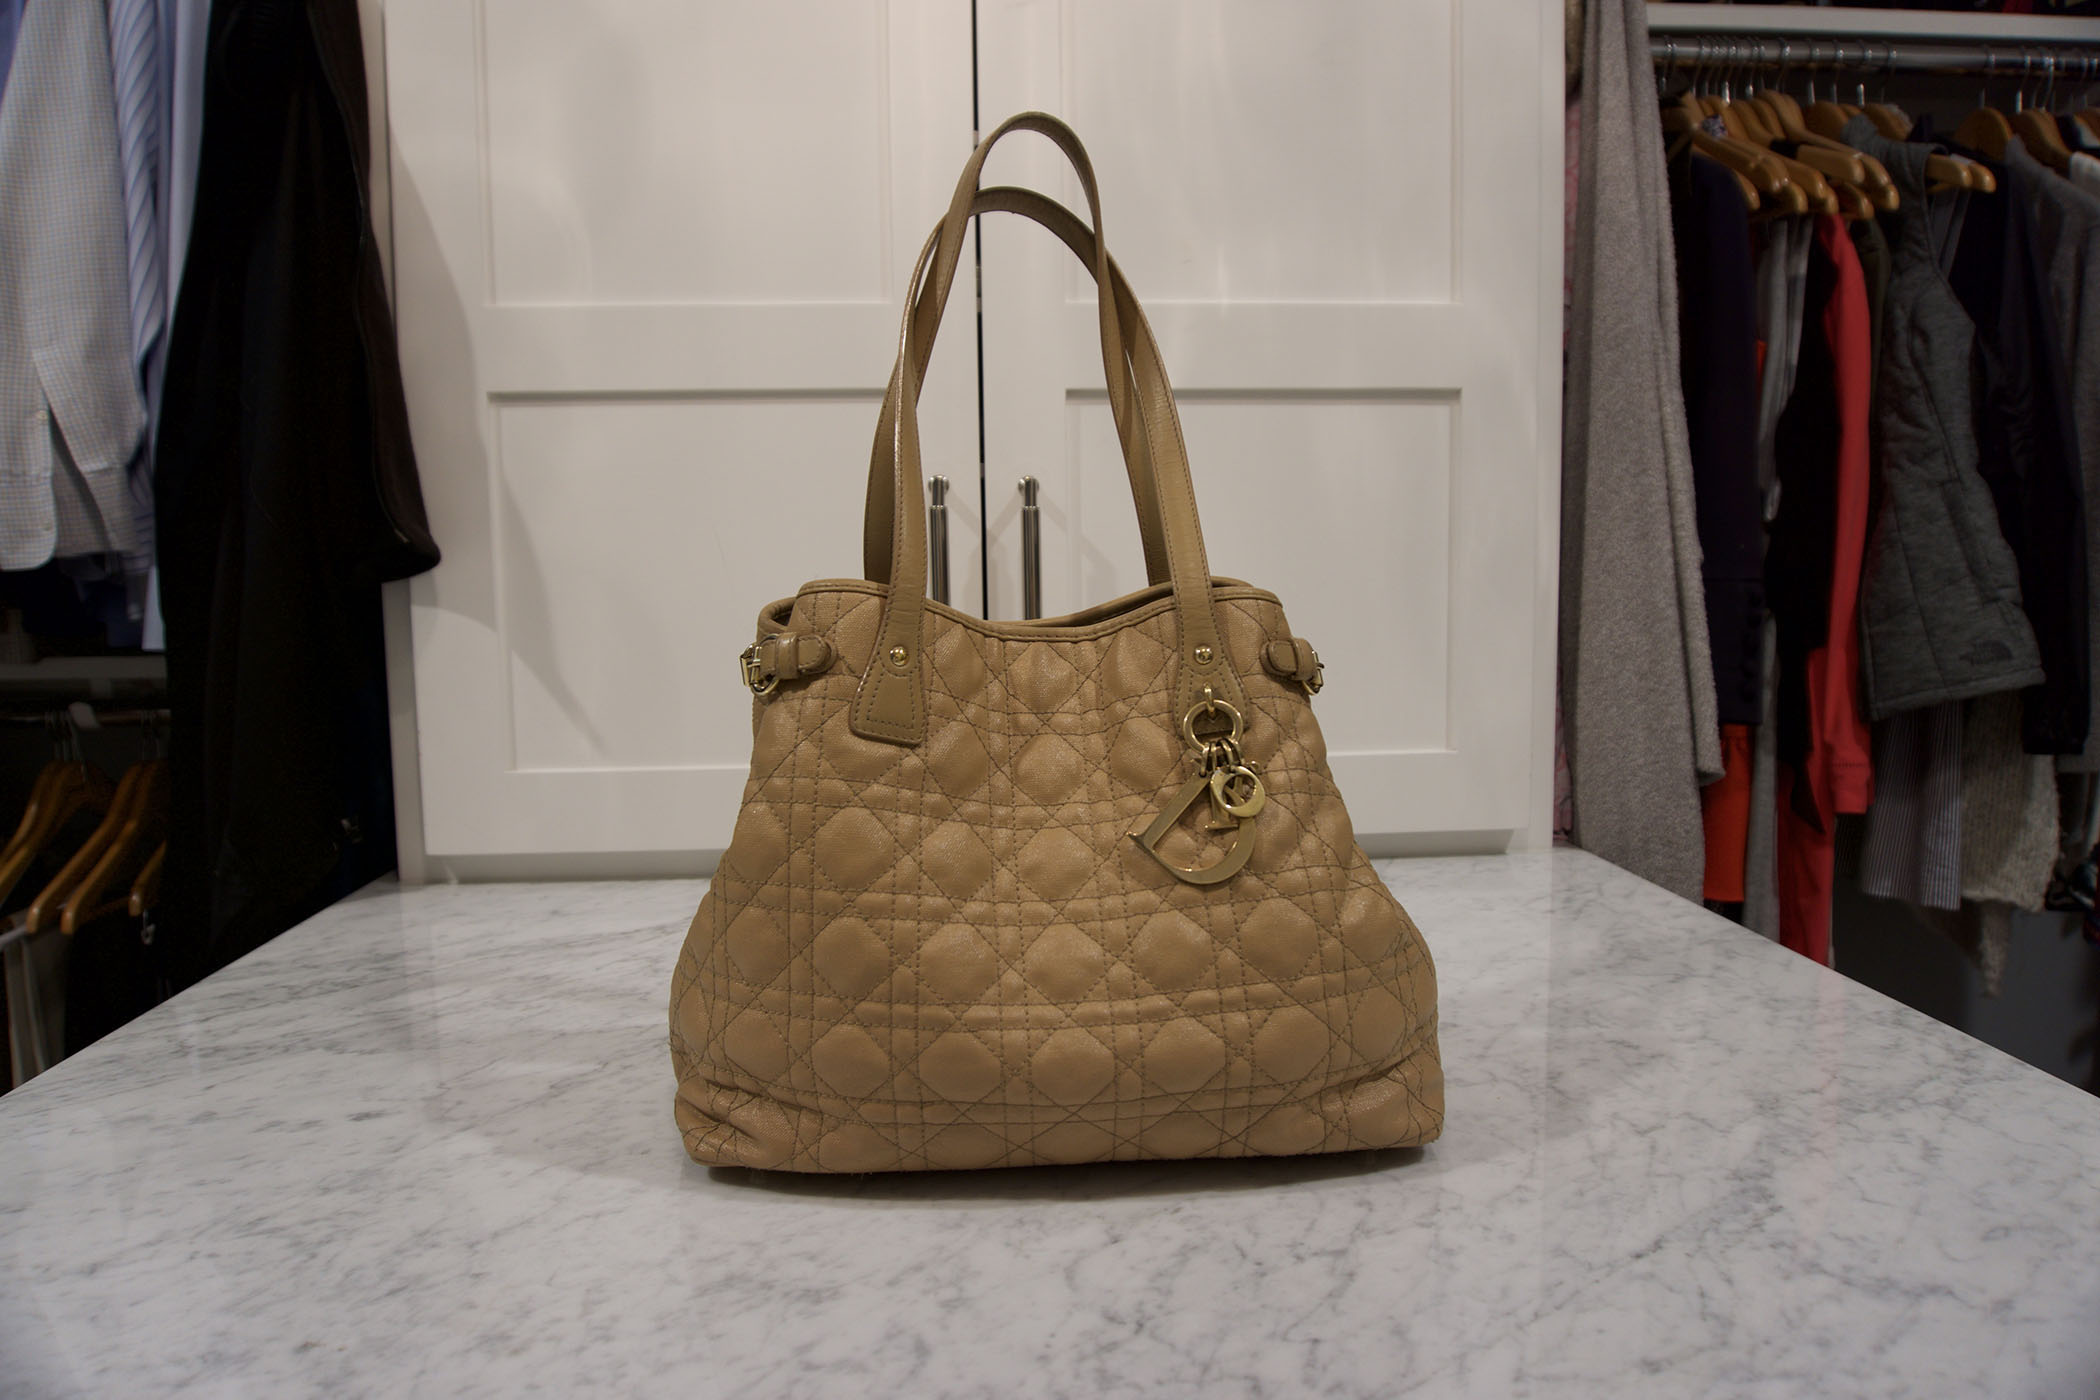 5 important care tips for handbags